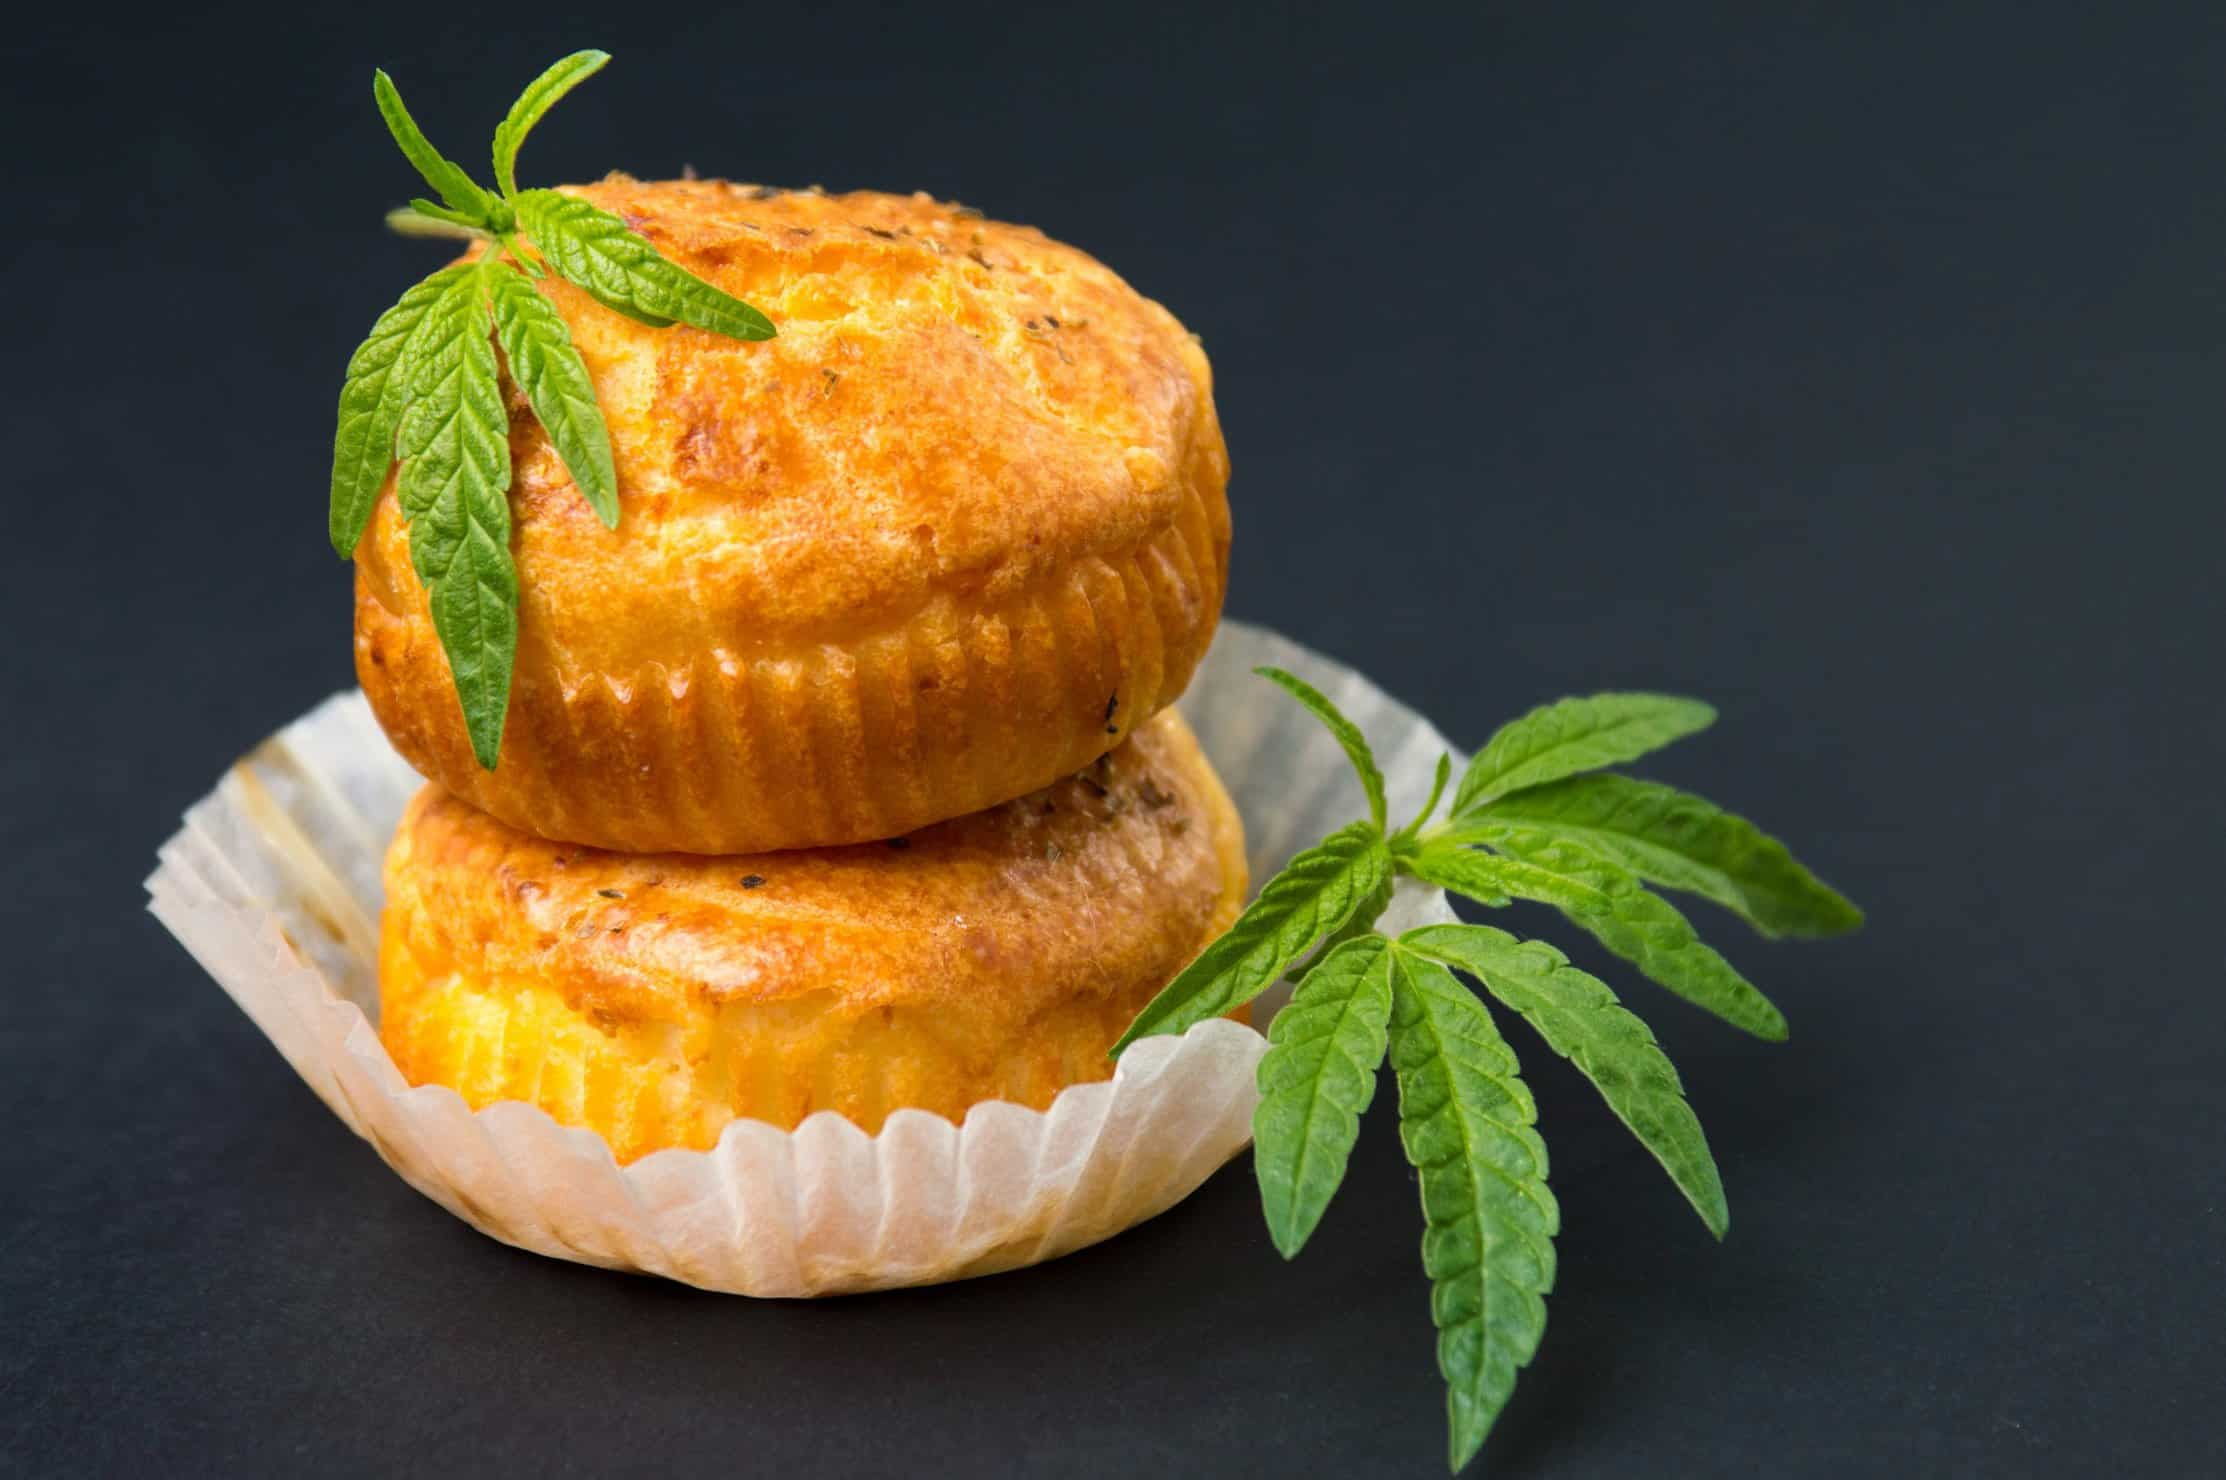 Cooking with CBD. Edibles with marijuana leaves.